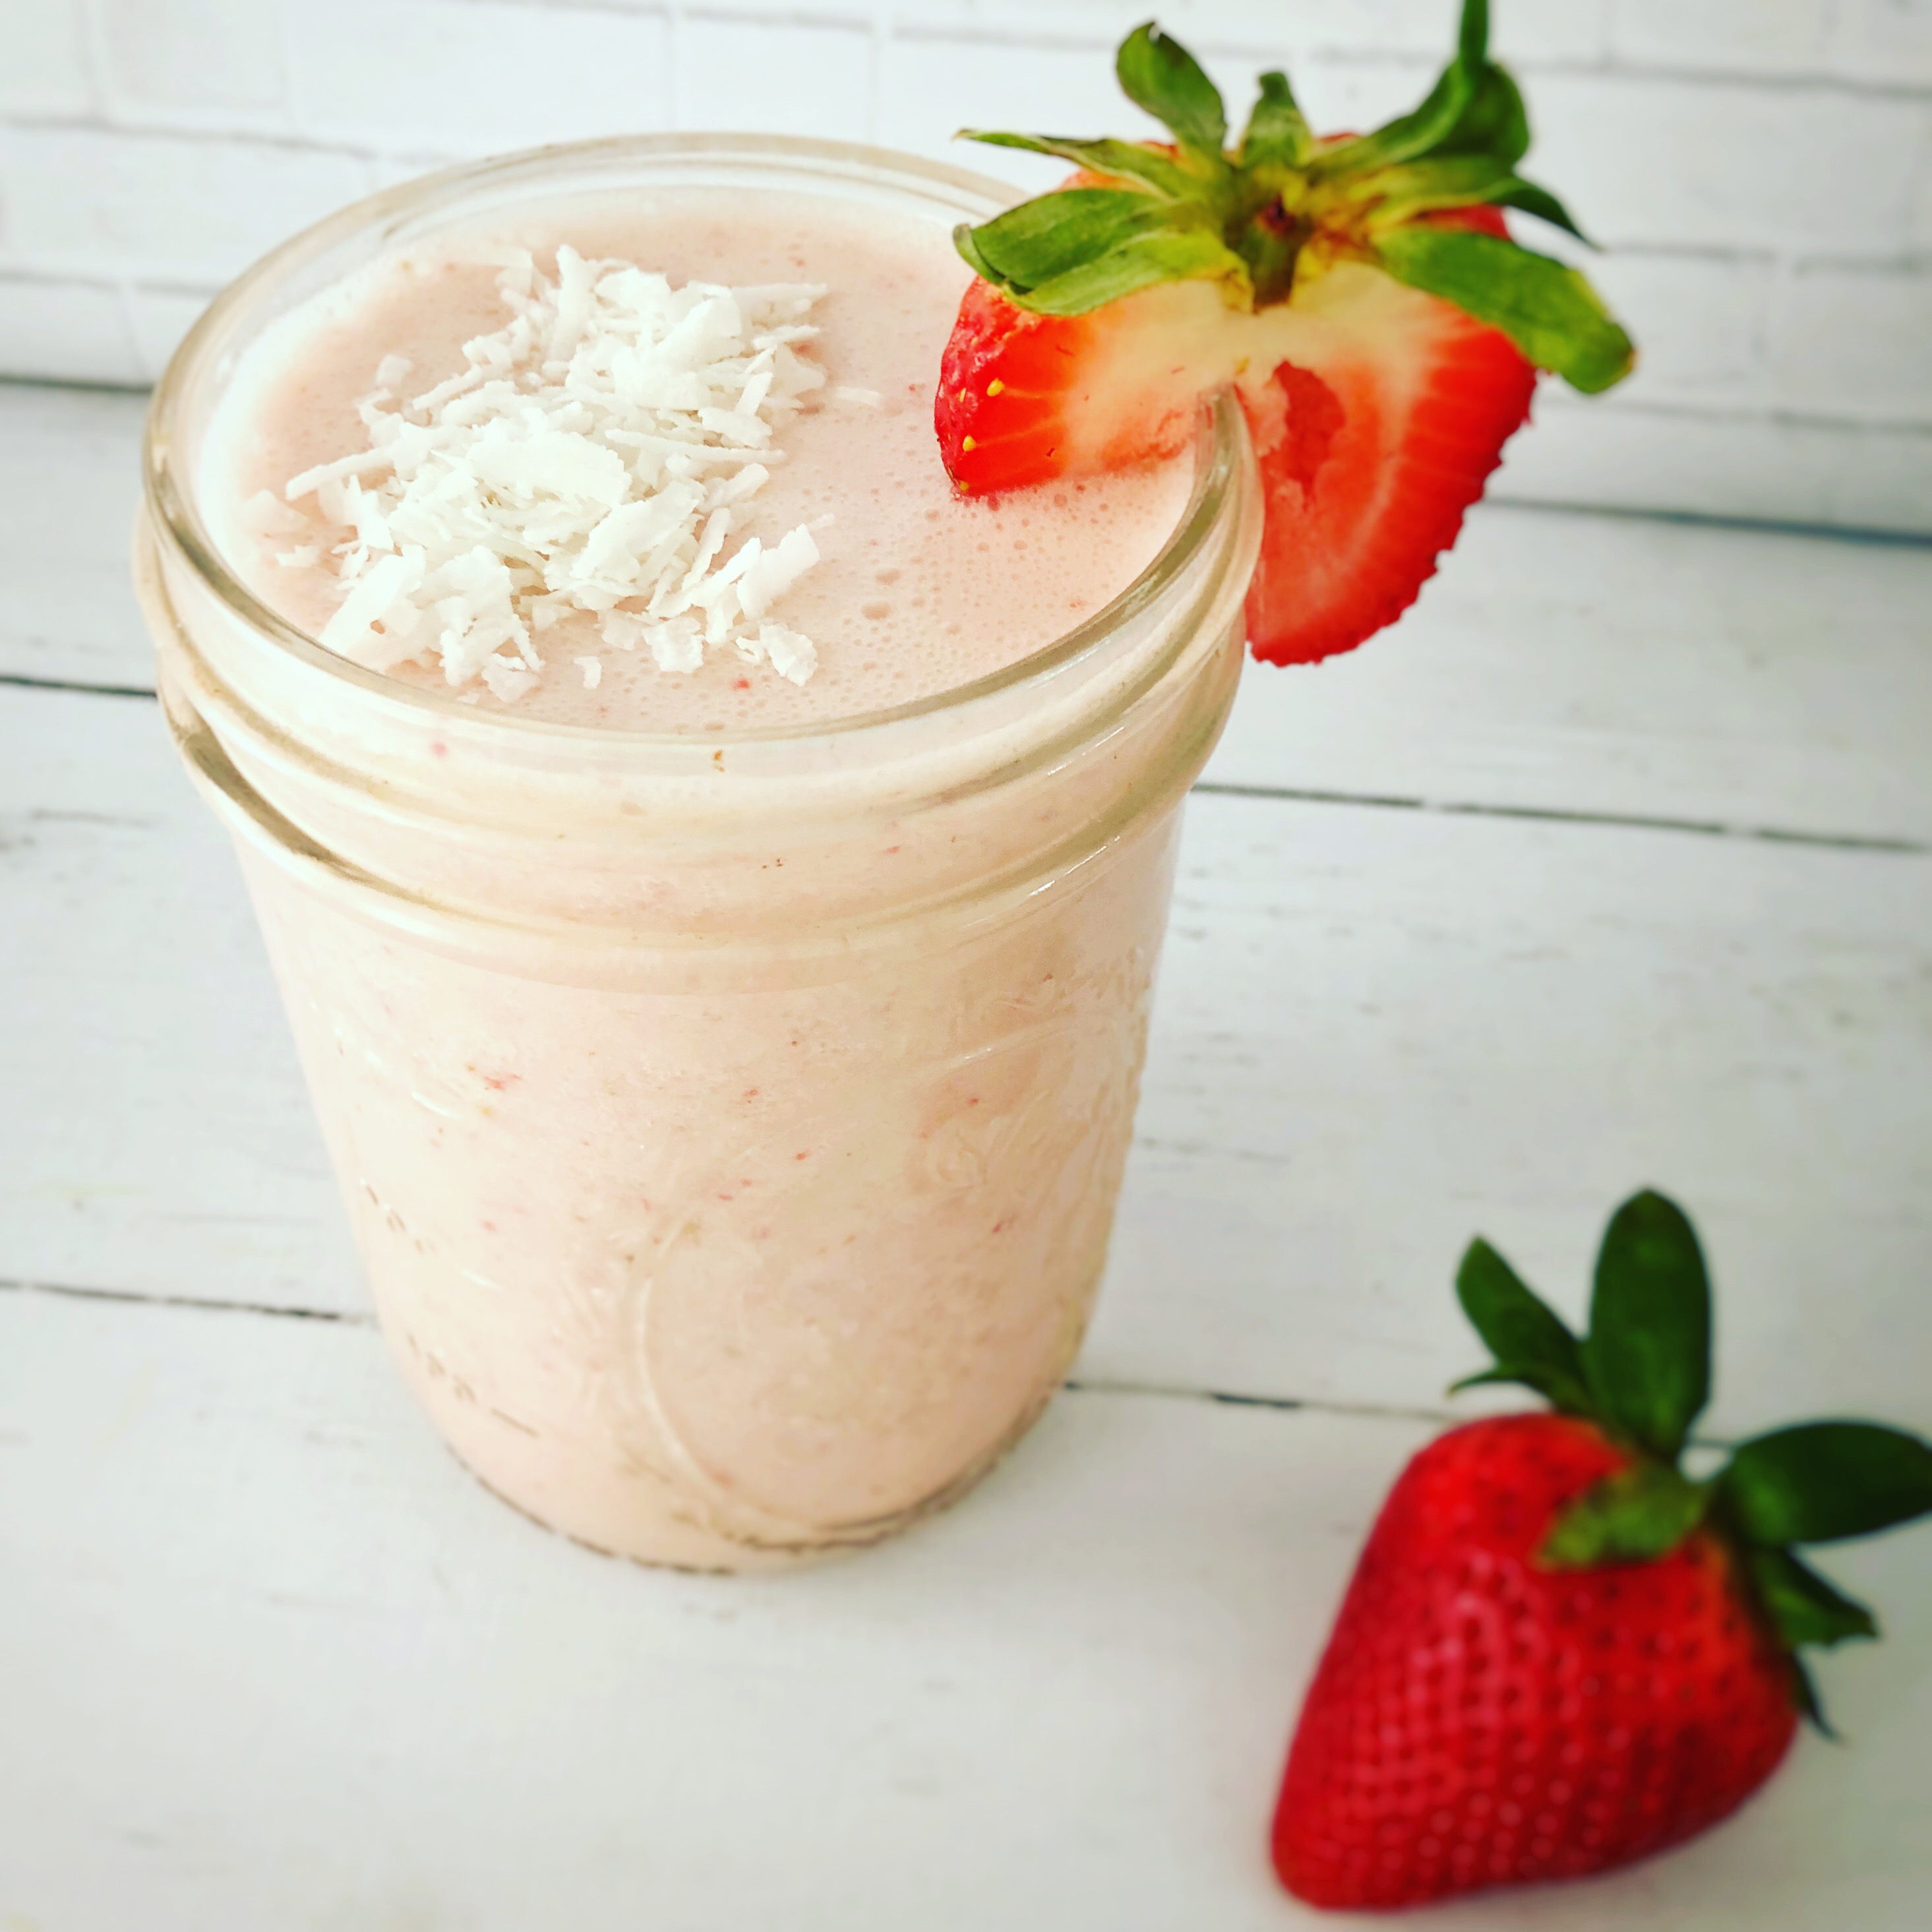 The KISS strawberry smoothie